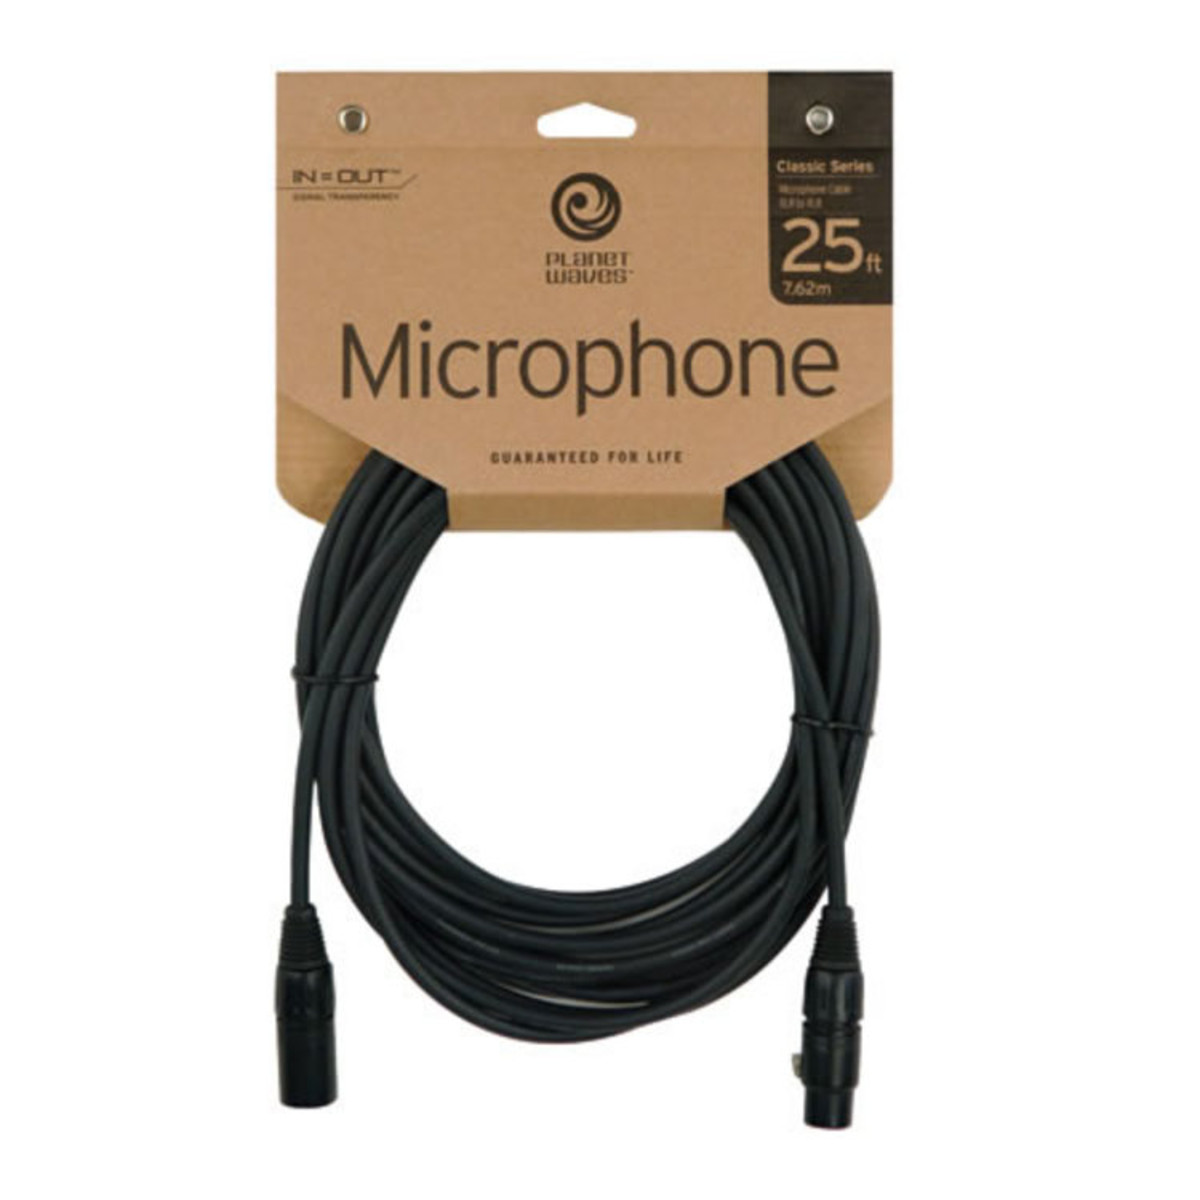 Planet Waves Classic XLR (M) to XLR (F) Microphone Cable 25ft at ...